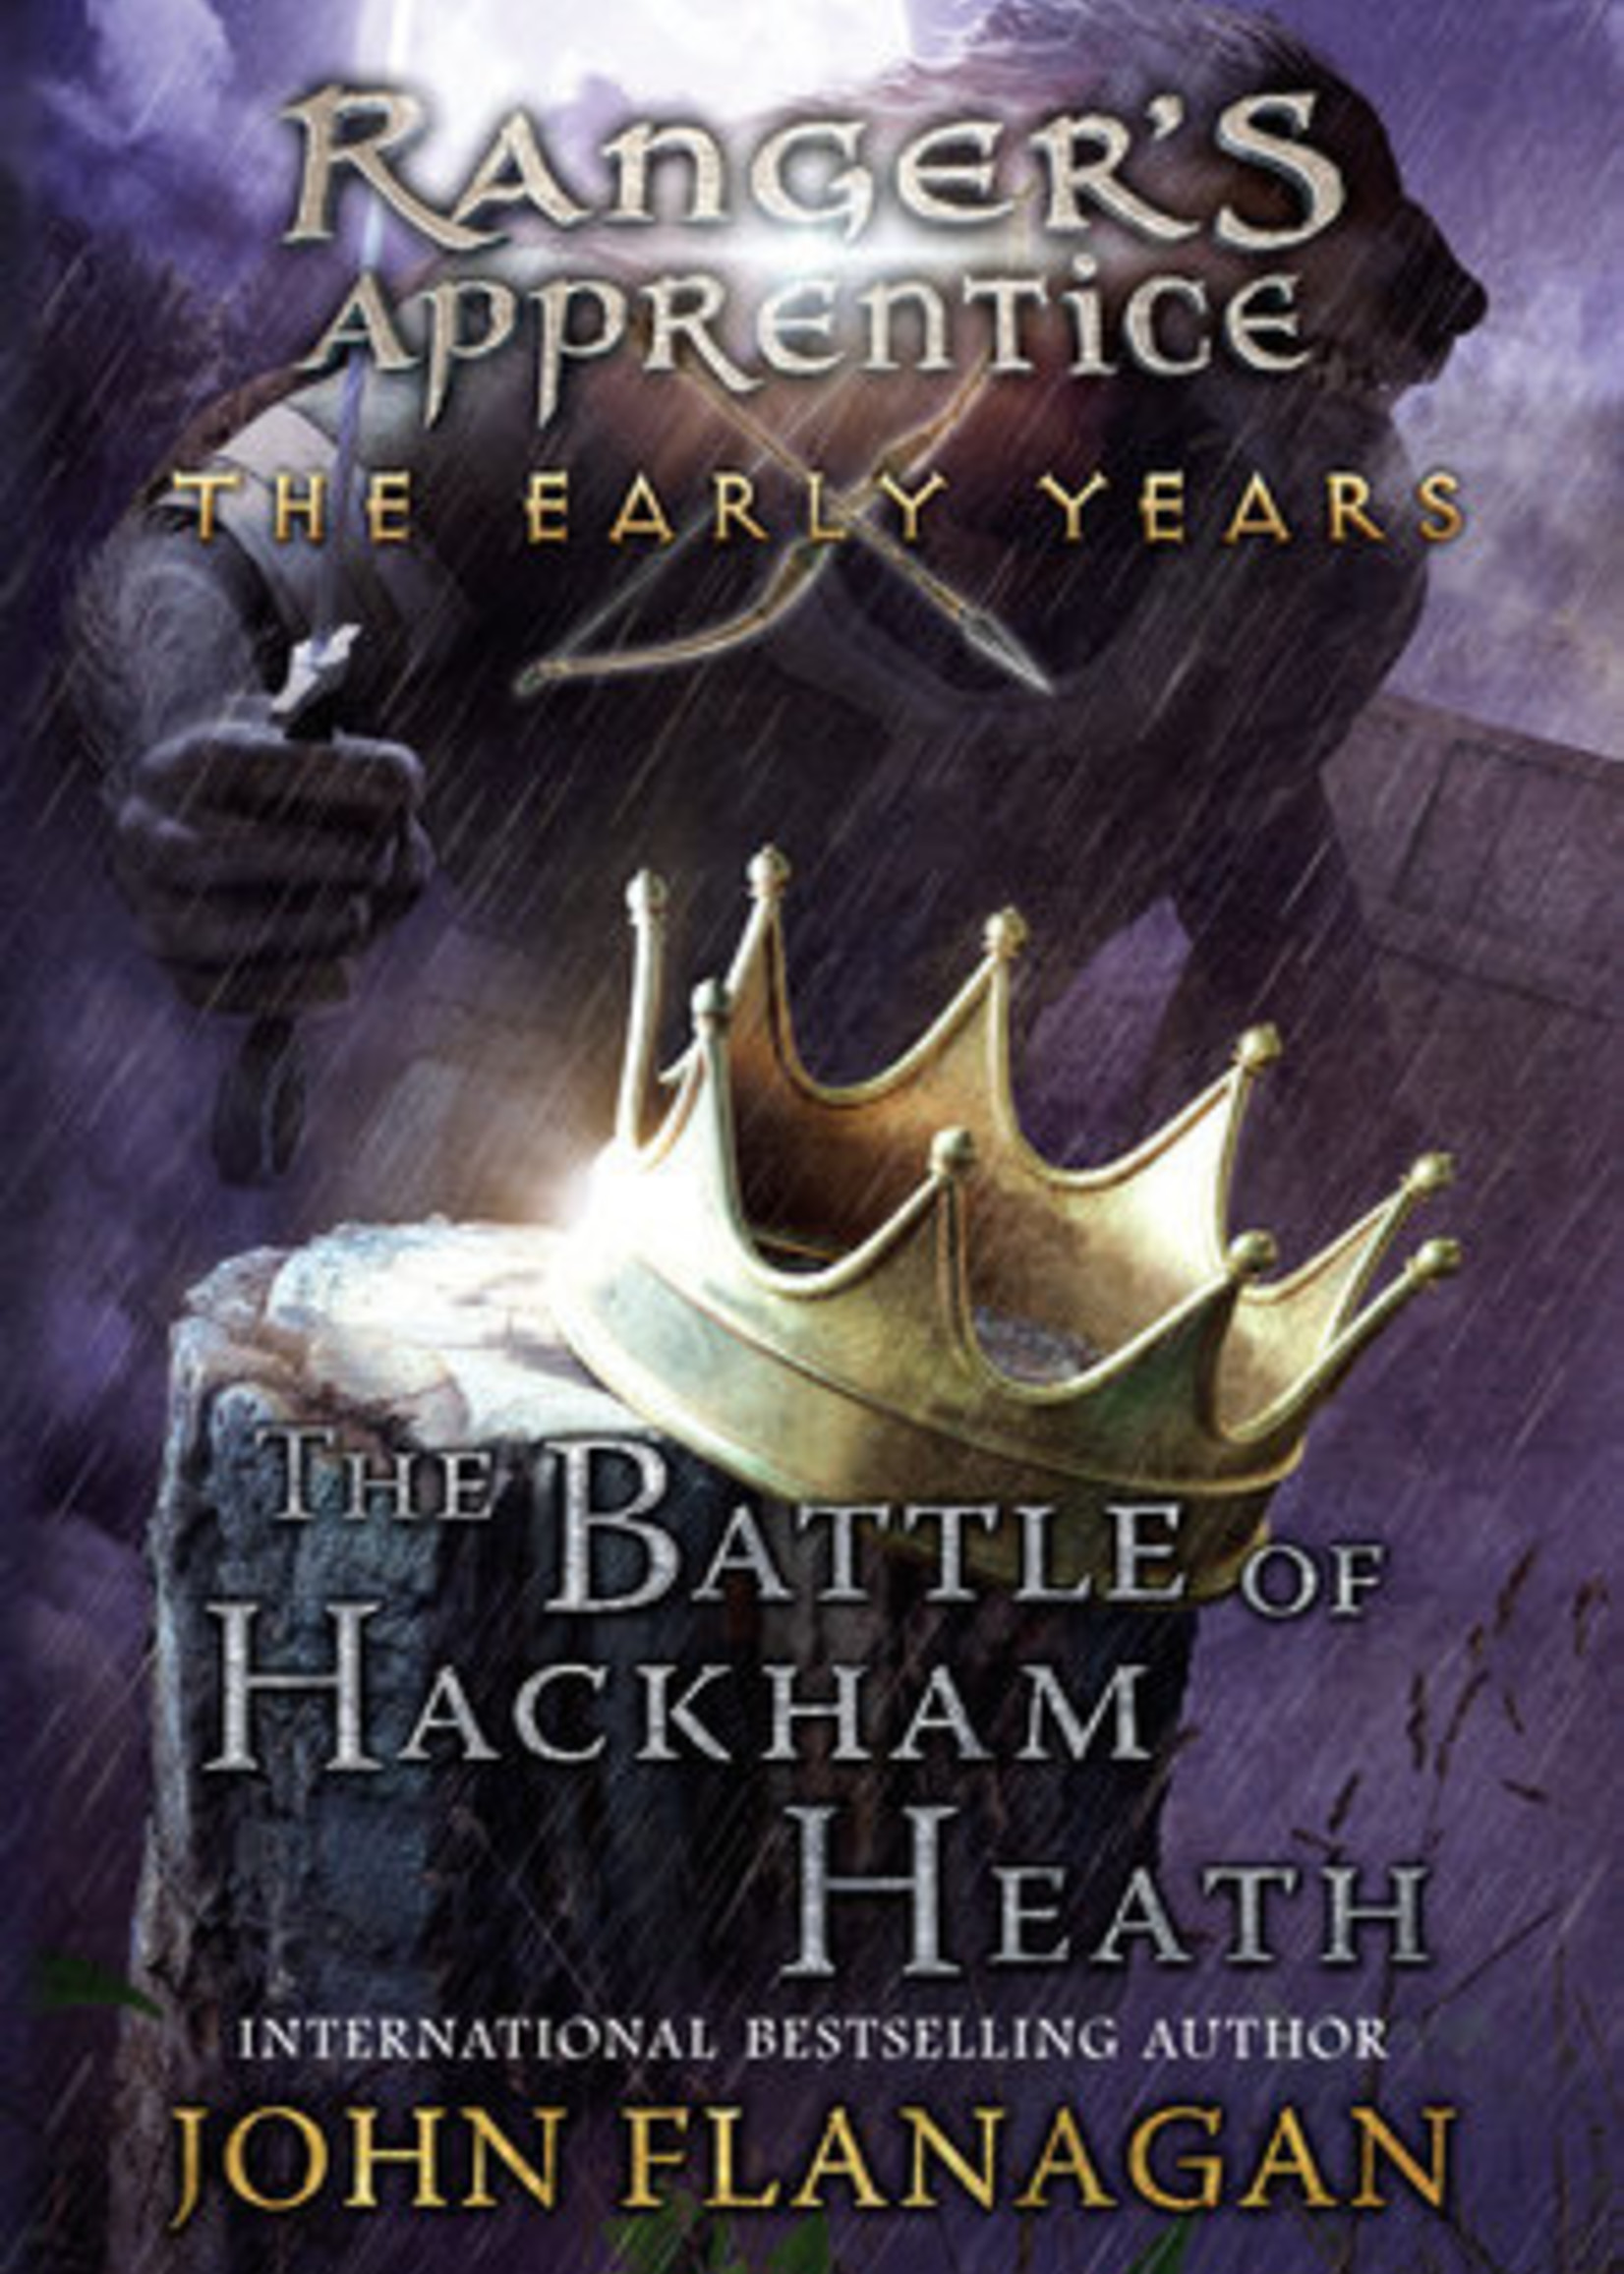 Ranger's Apprentice, The Early Years #02, The Battle of Hackham Heath - Paperback